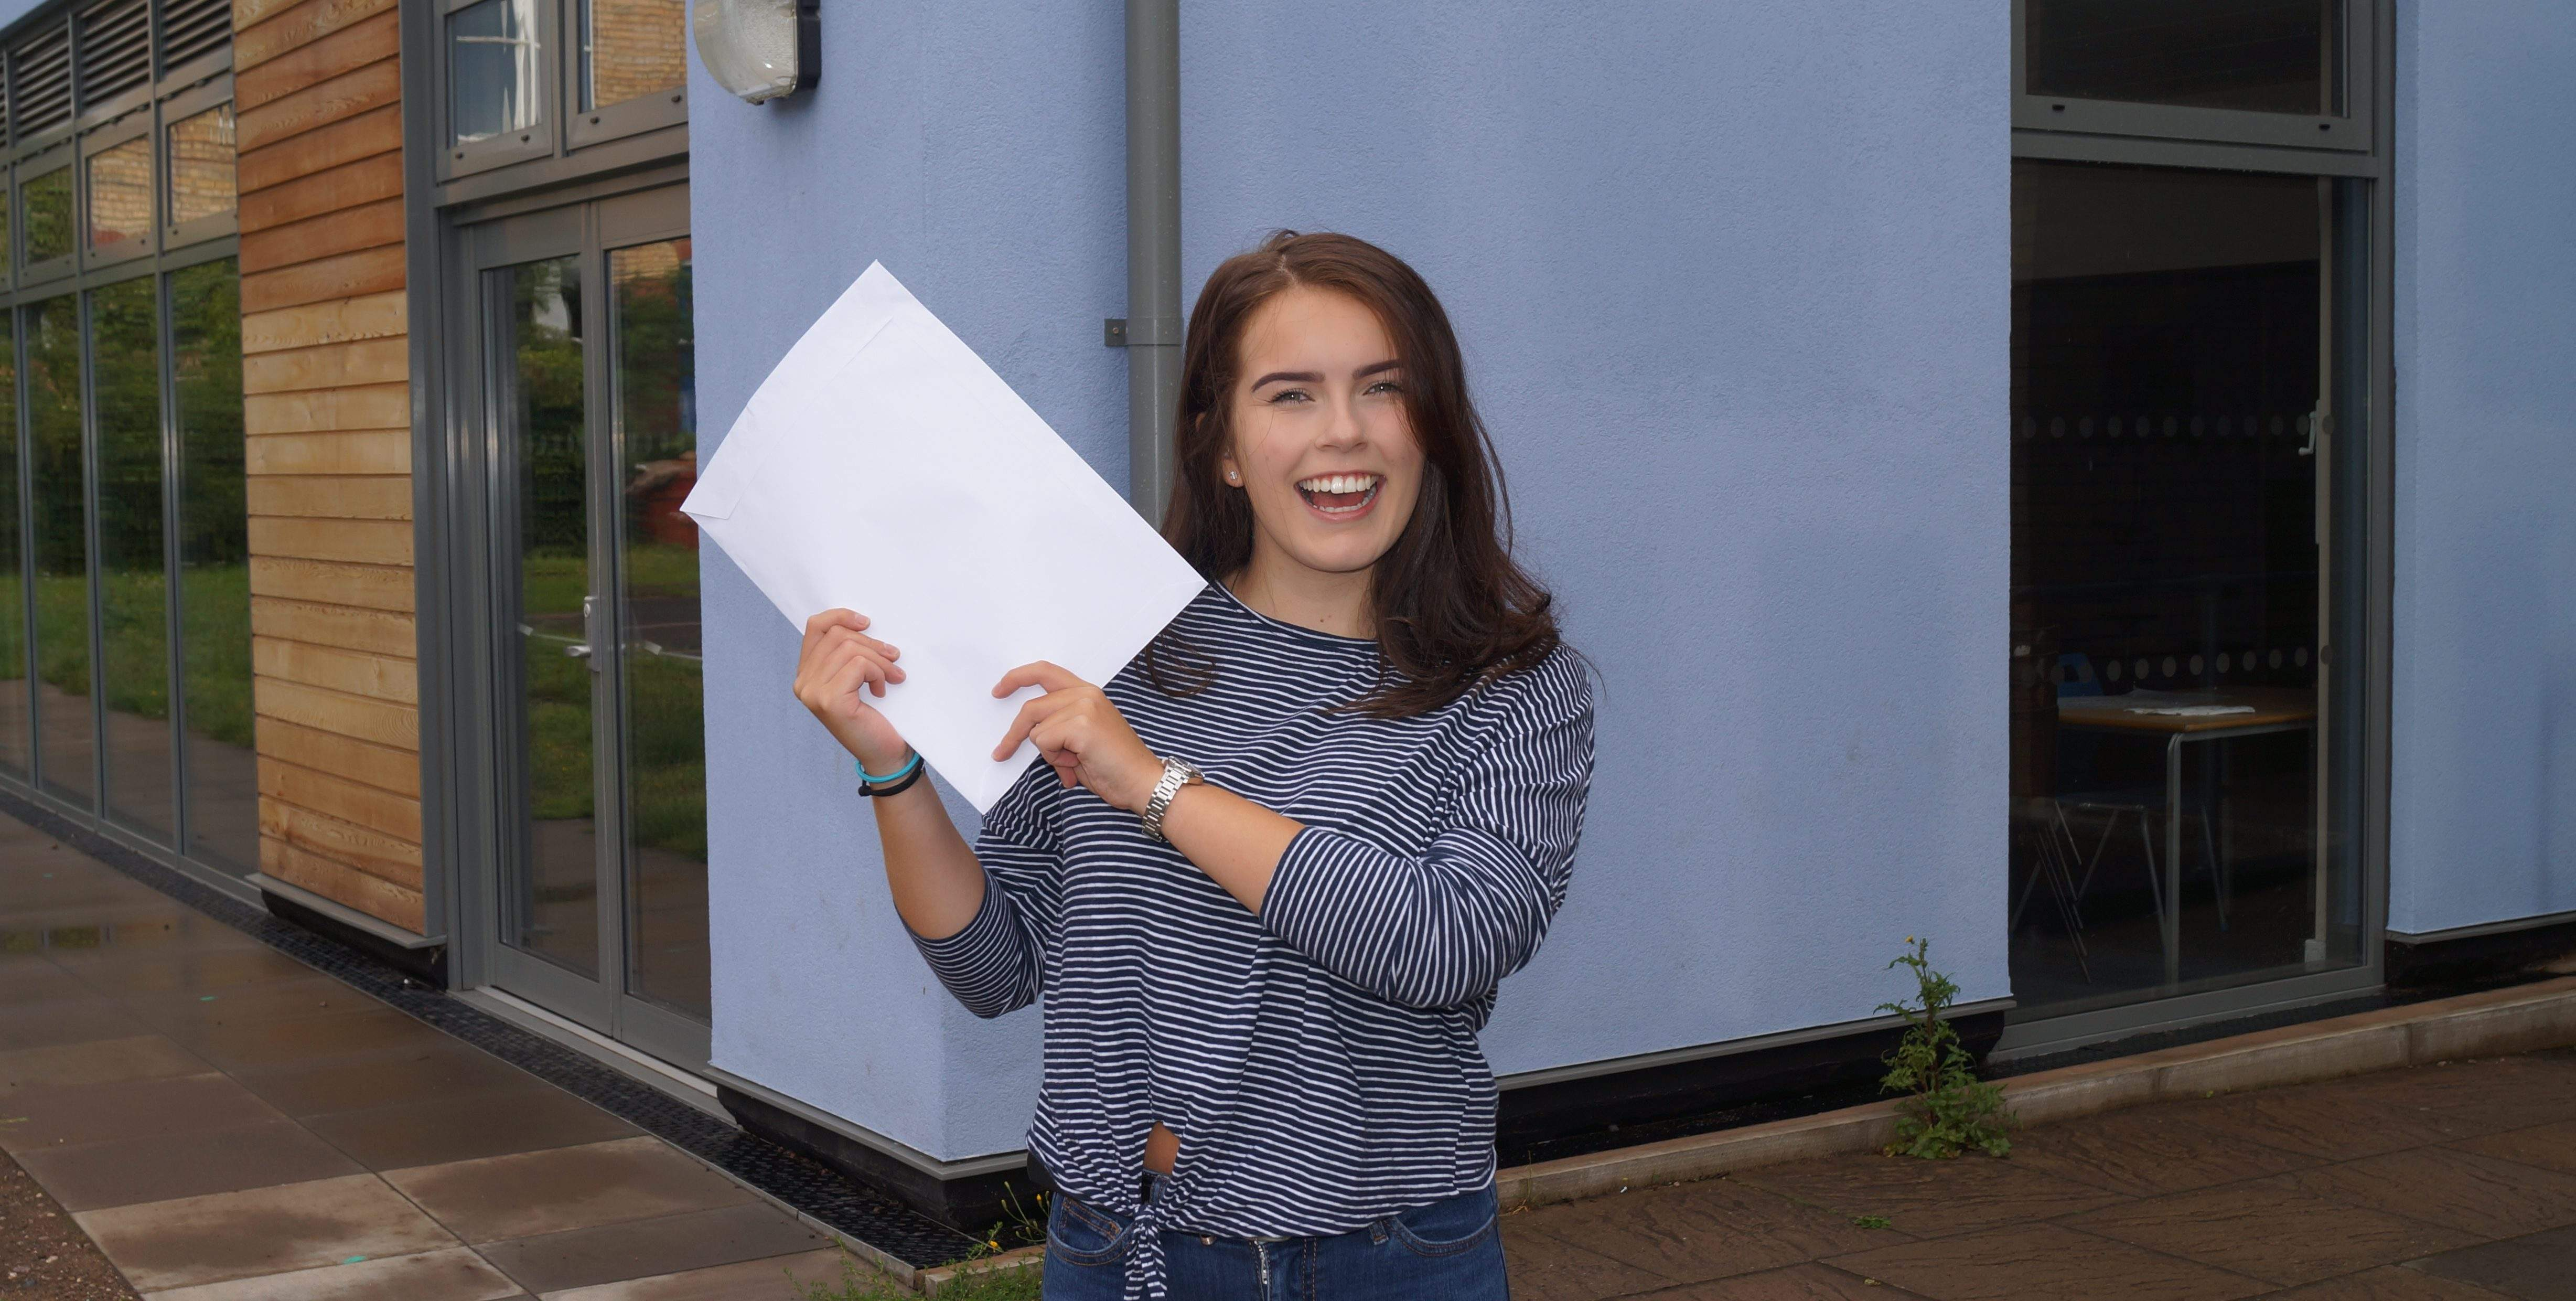 Holy Trinity School's A Level Success - Year 13 A Level Results Best for Over 10 years – 44% Top Grades A* - B